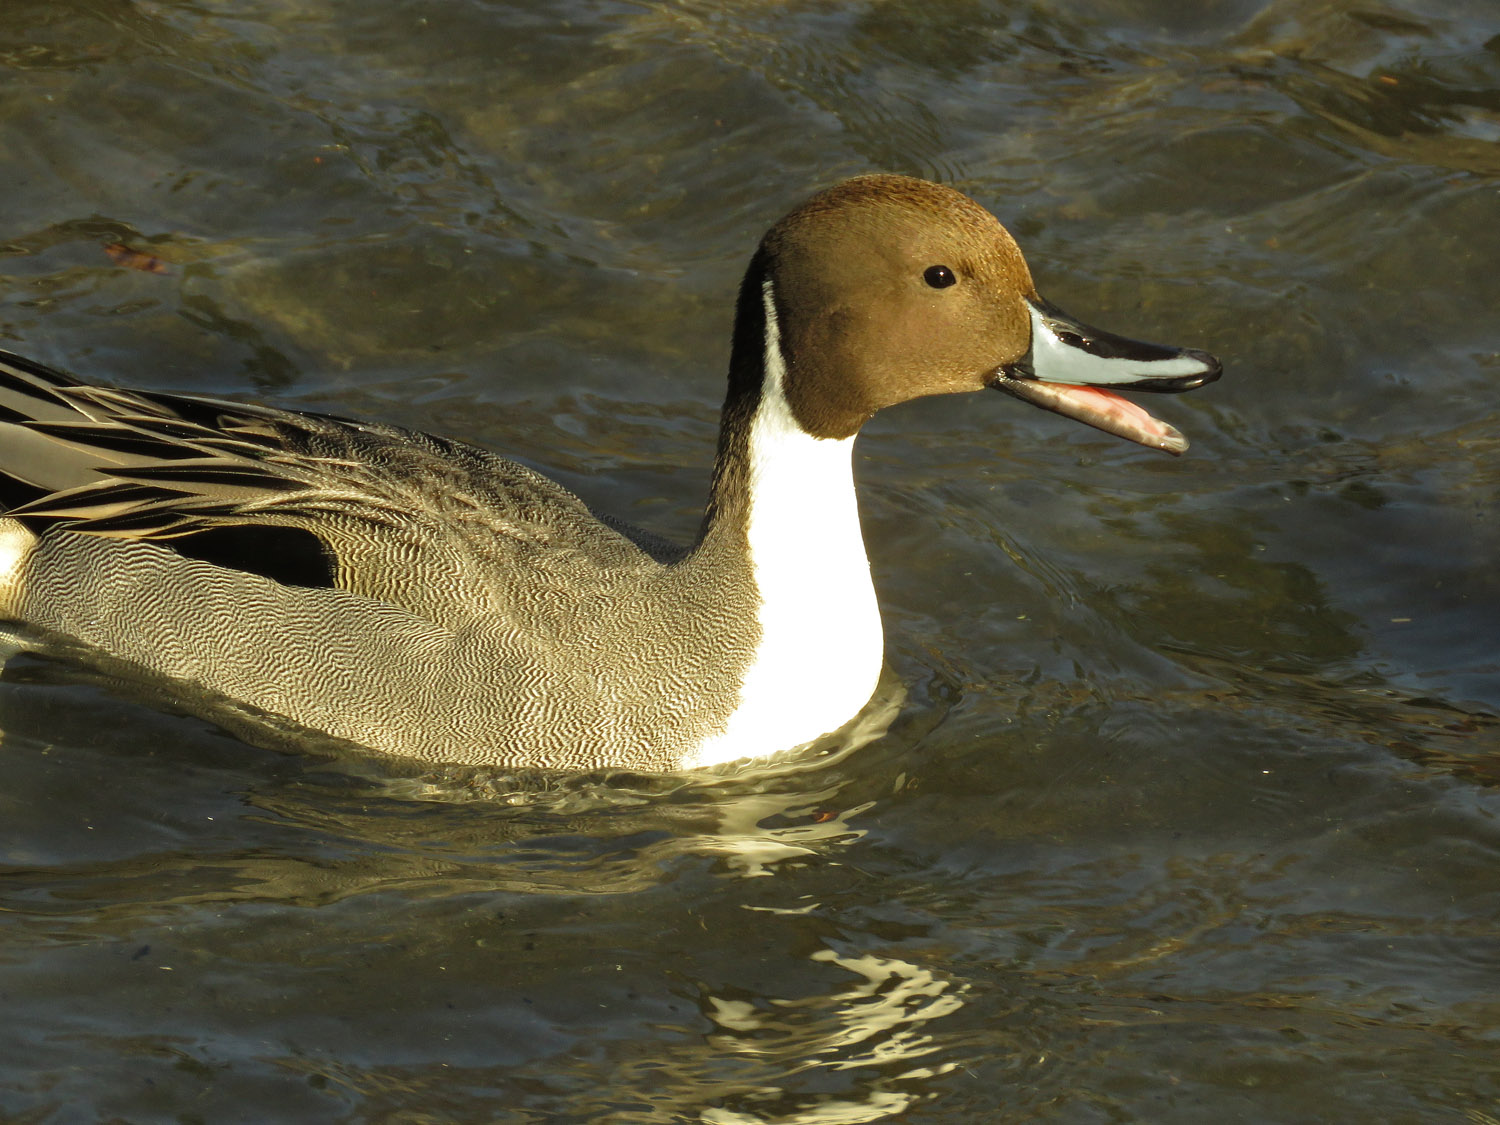 Northern pintail (Pinny) at the Pond, Jan. 9